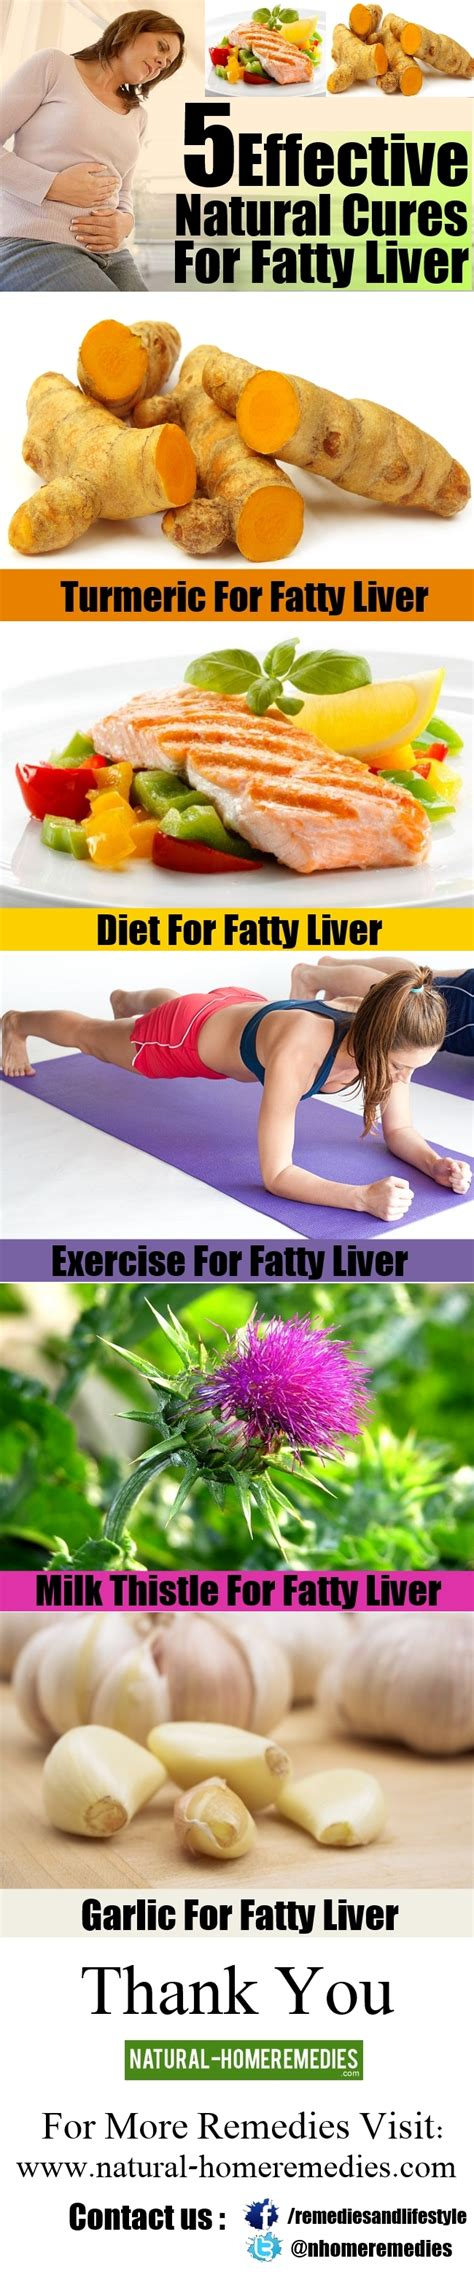 active liver cleanse picture 14